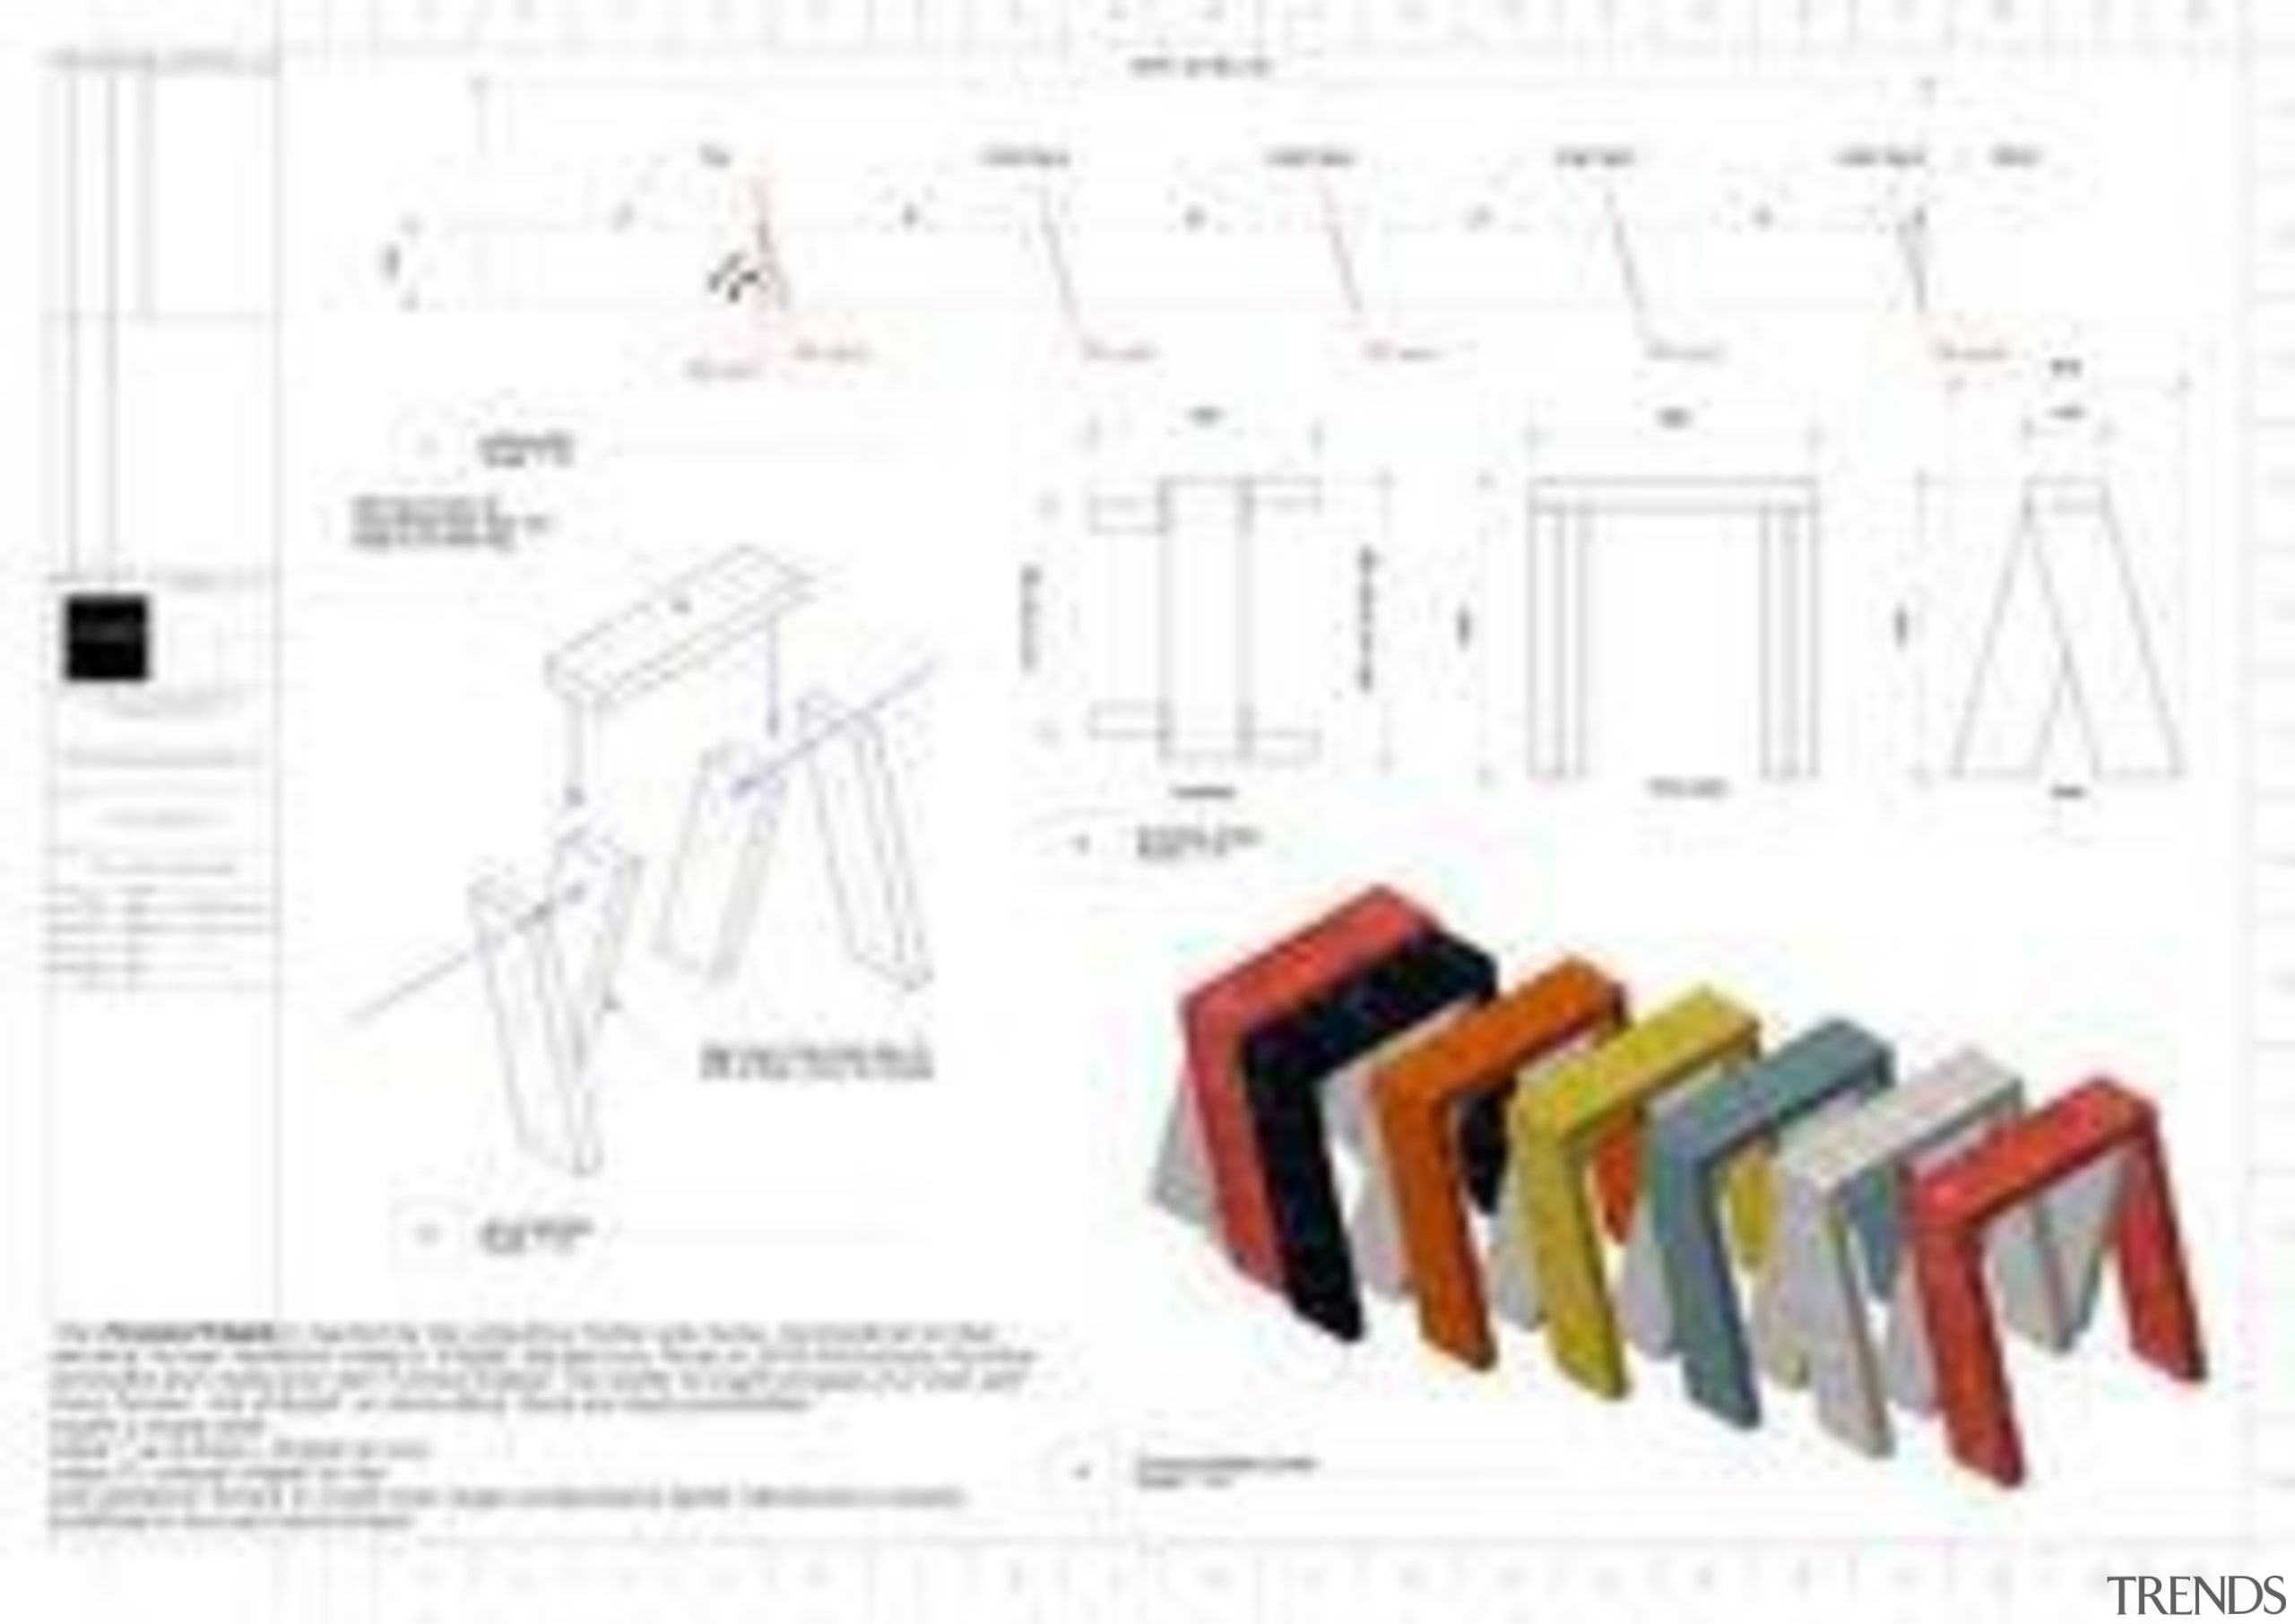 David Formica S'Table - David Formica S'Table - design, diagram, font, furniture, line, product, product design, text, white